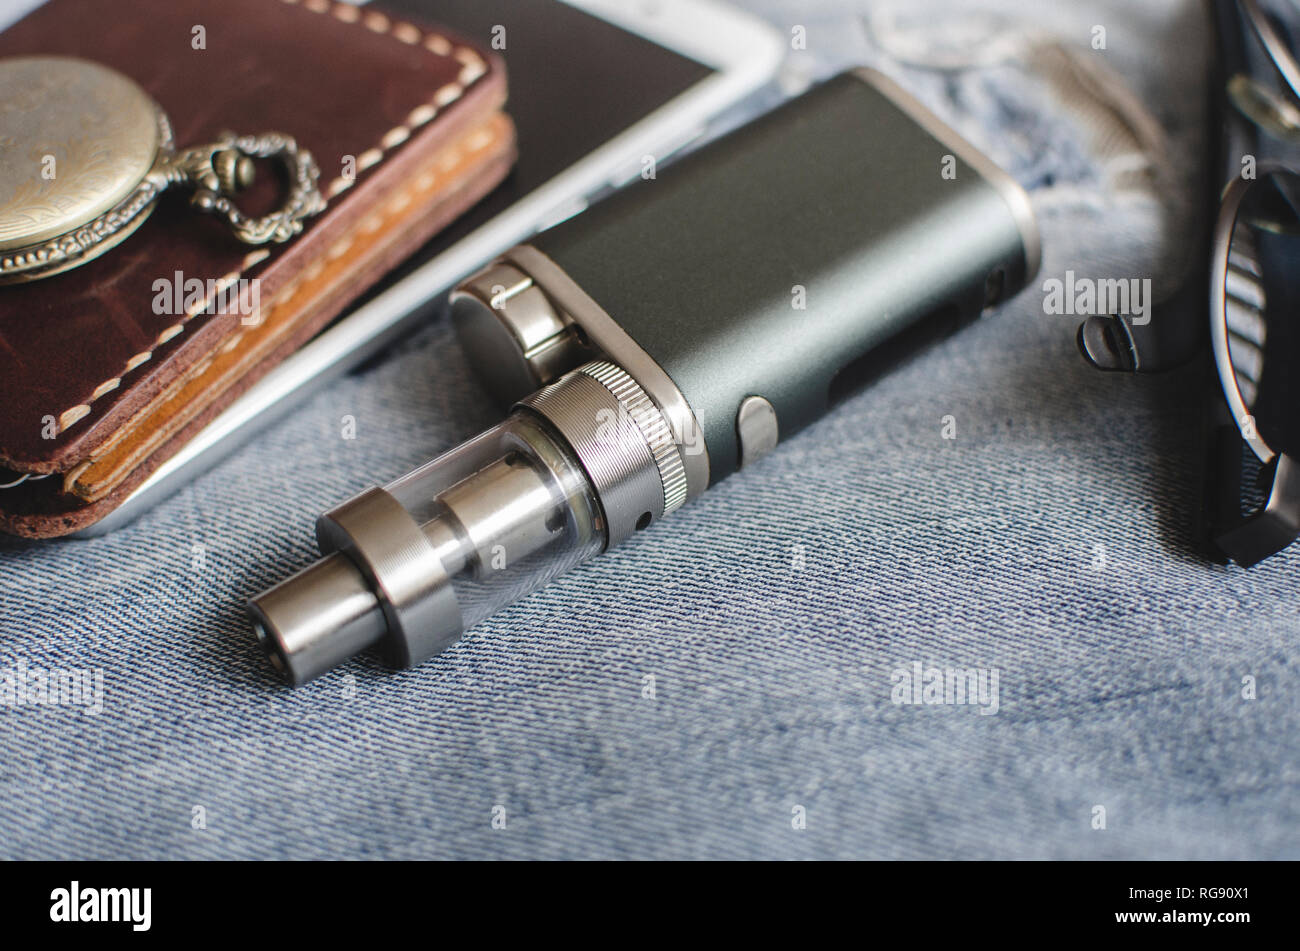 Advanced personal vaporizer or e-cigarette, close up - Stock Image